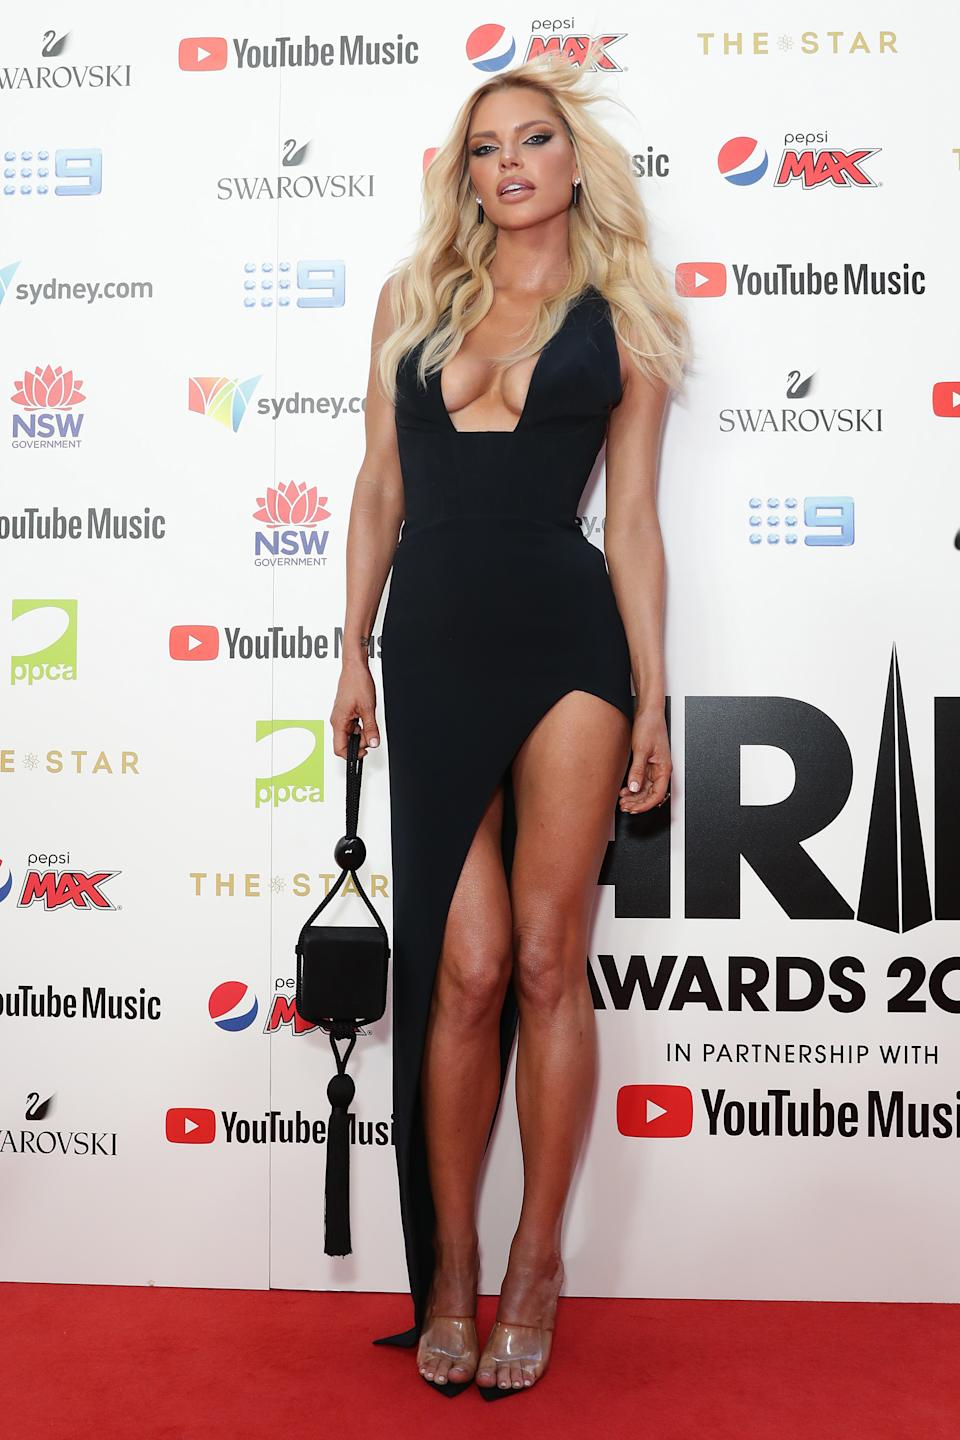 Sophie Monk rocked a black mini dress at the ARIA Awards 2019 at The Star. Photo: Getty Images